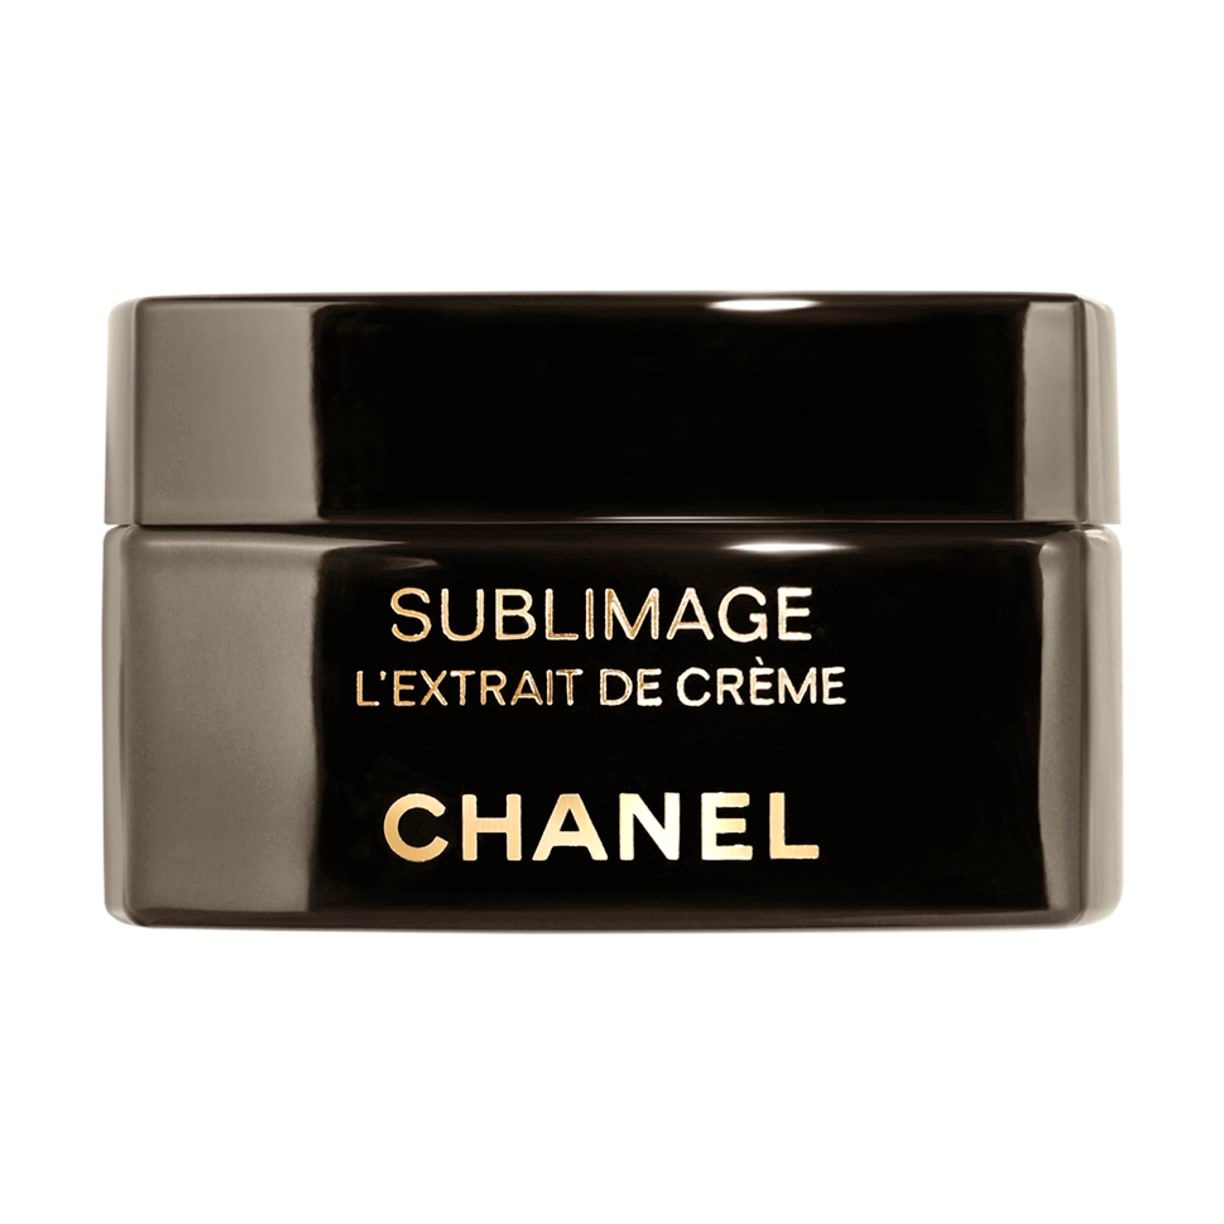 SUBLIMAGE L'EXT.CREME 50g